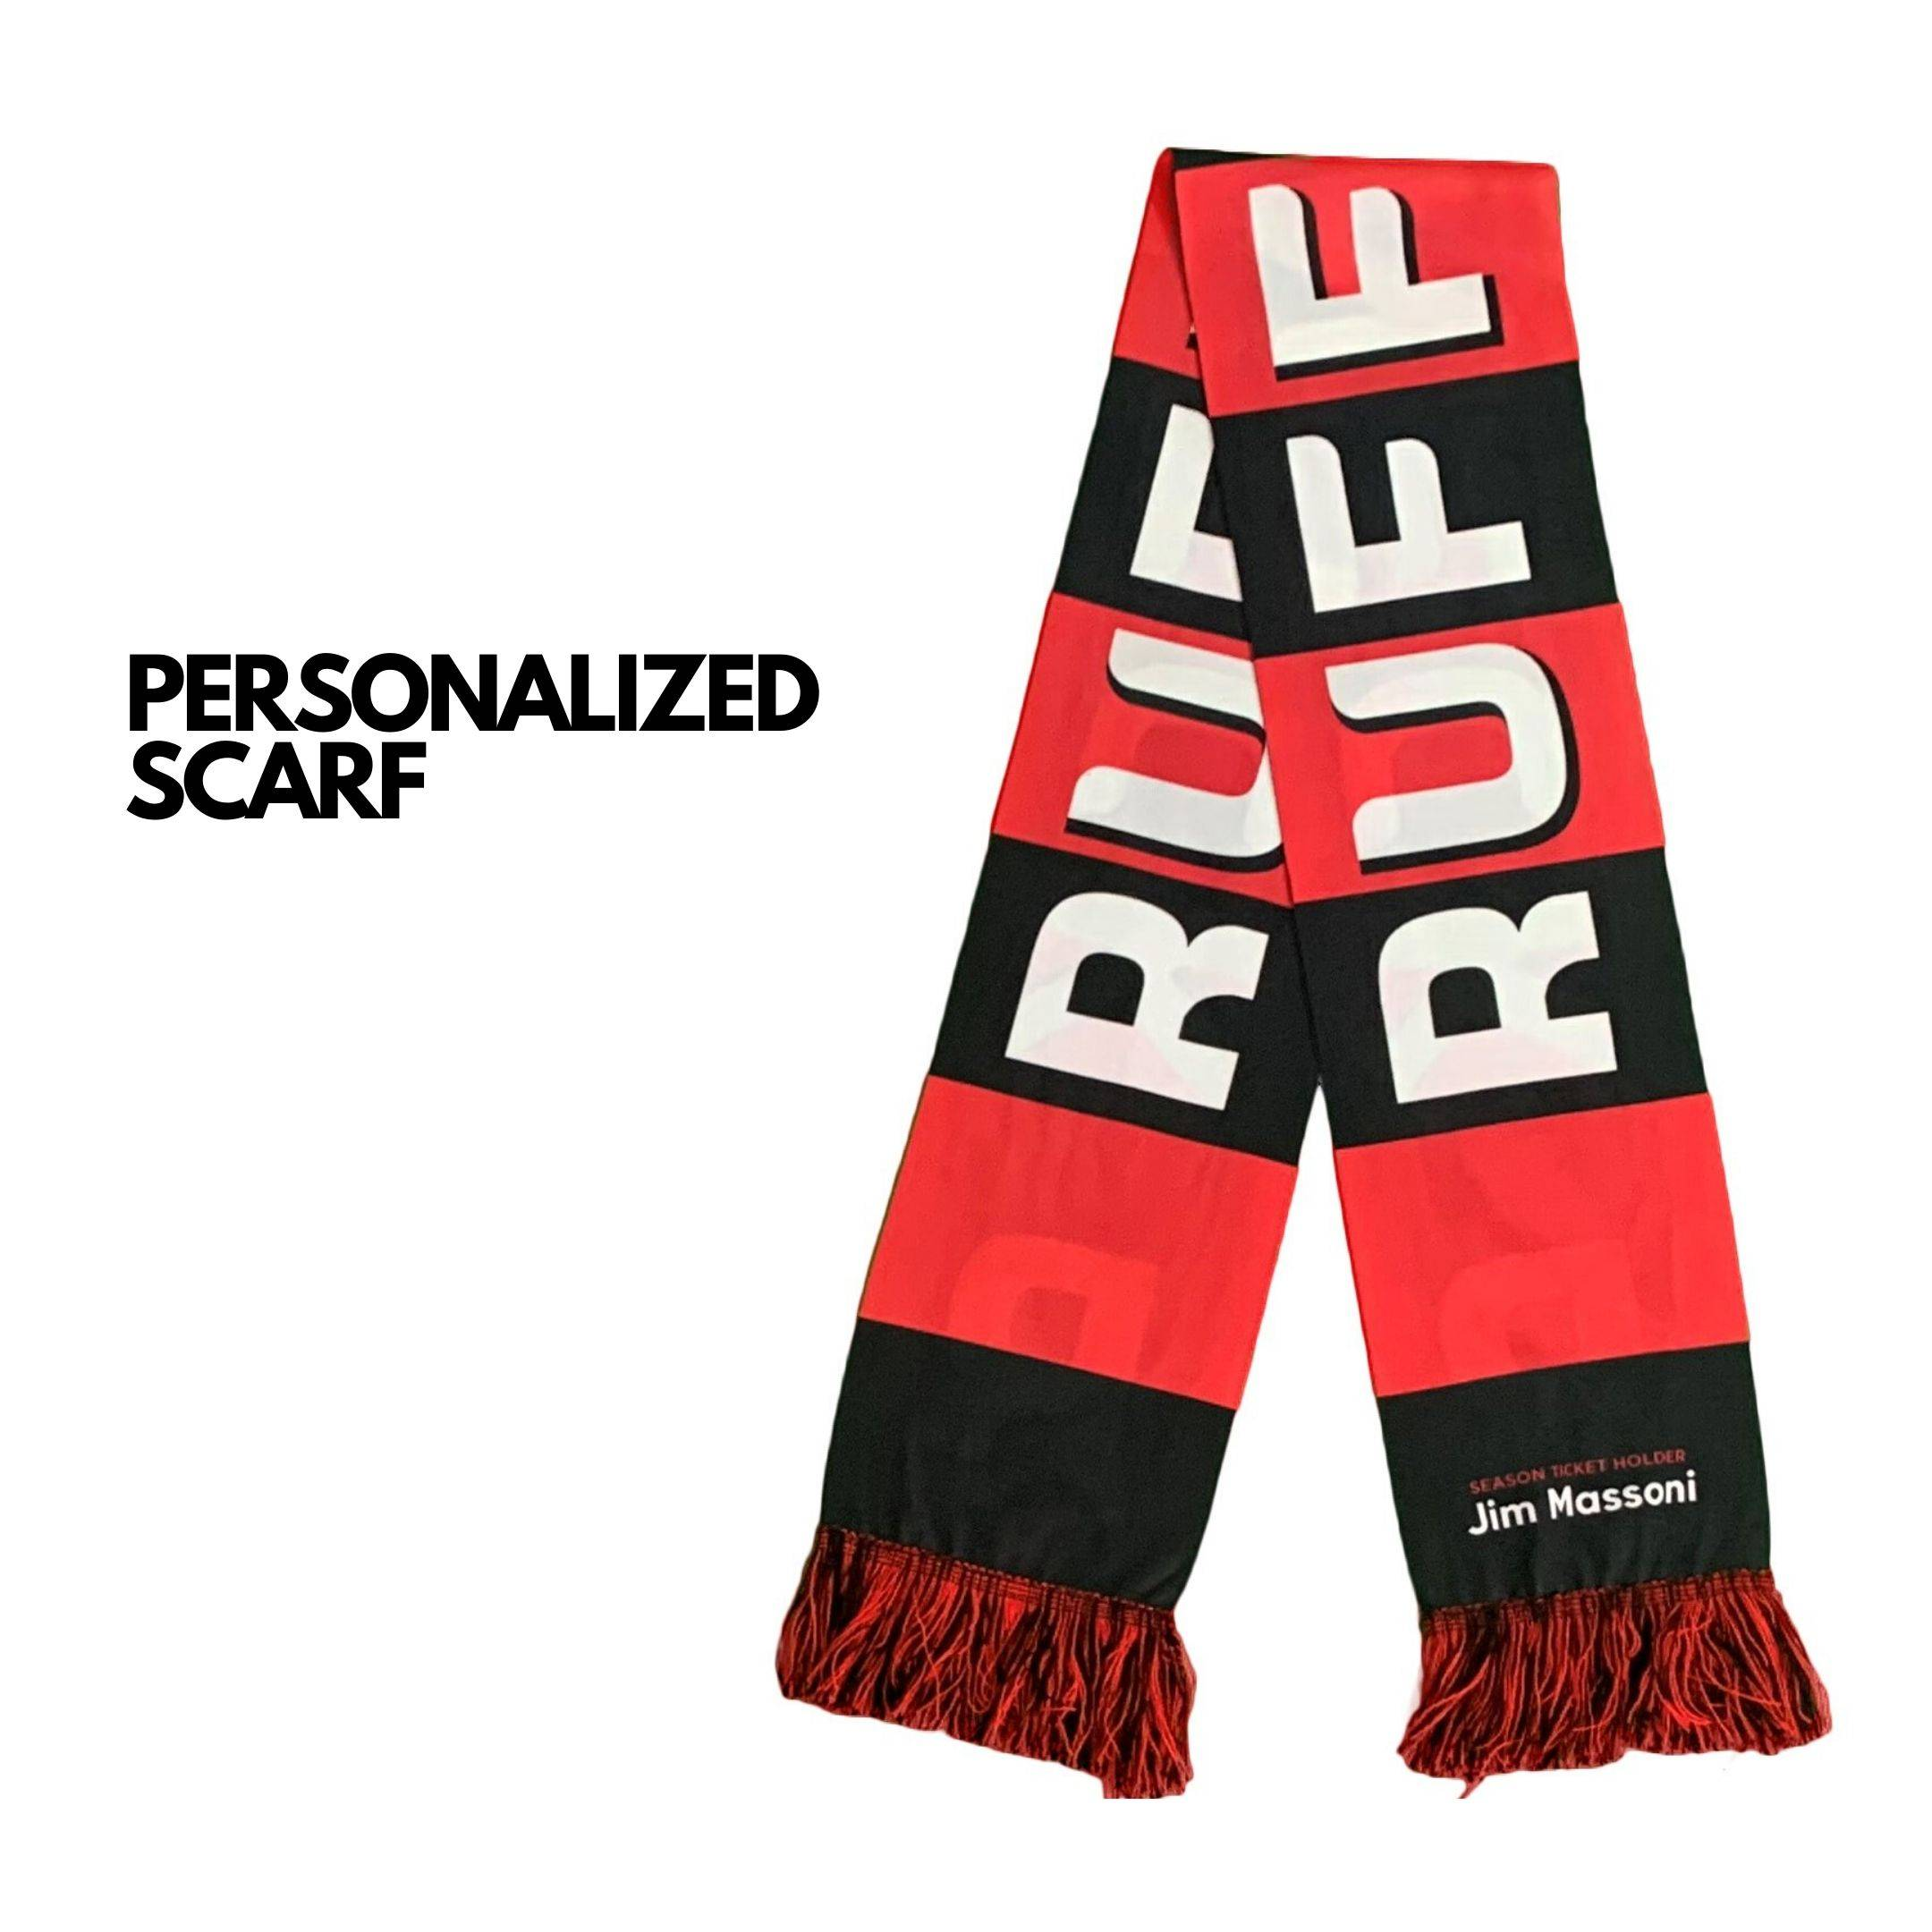 personalized scarf